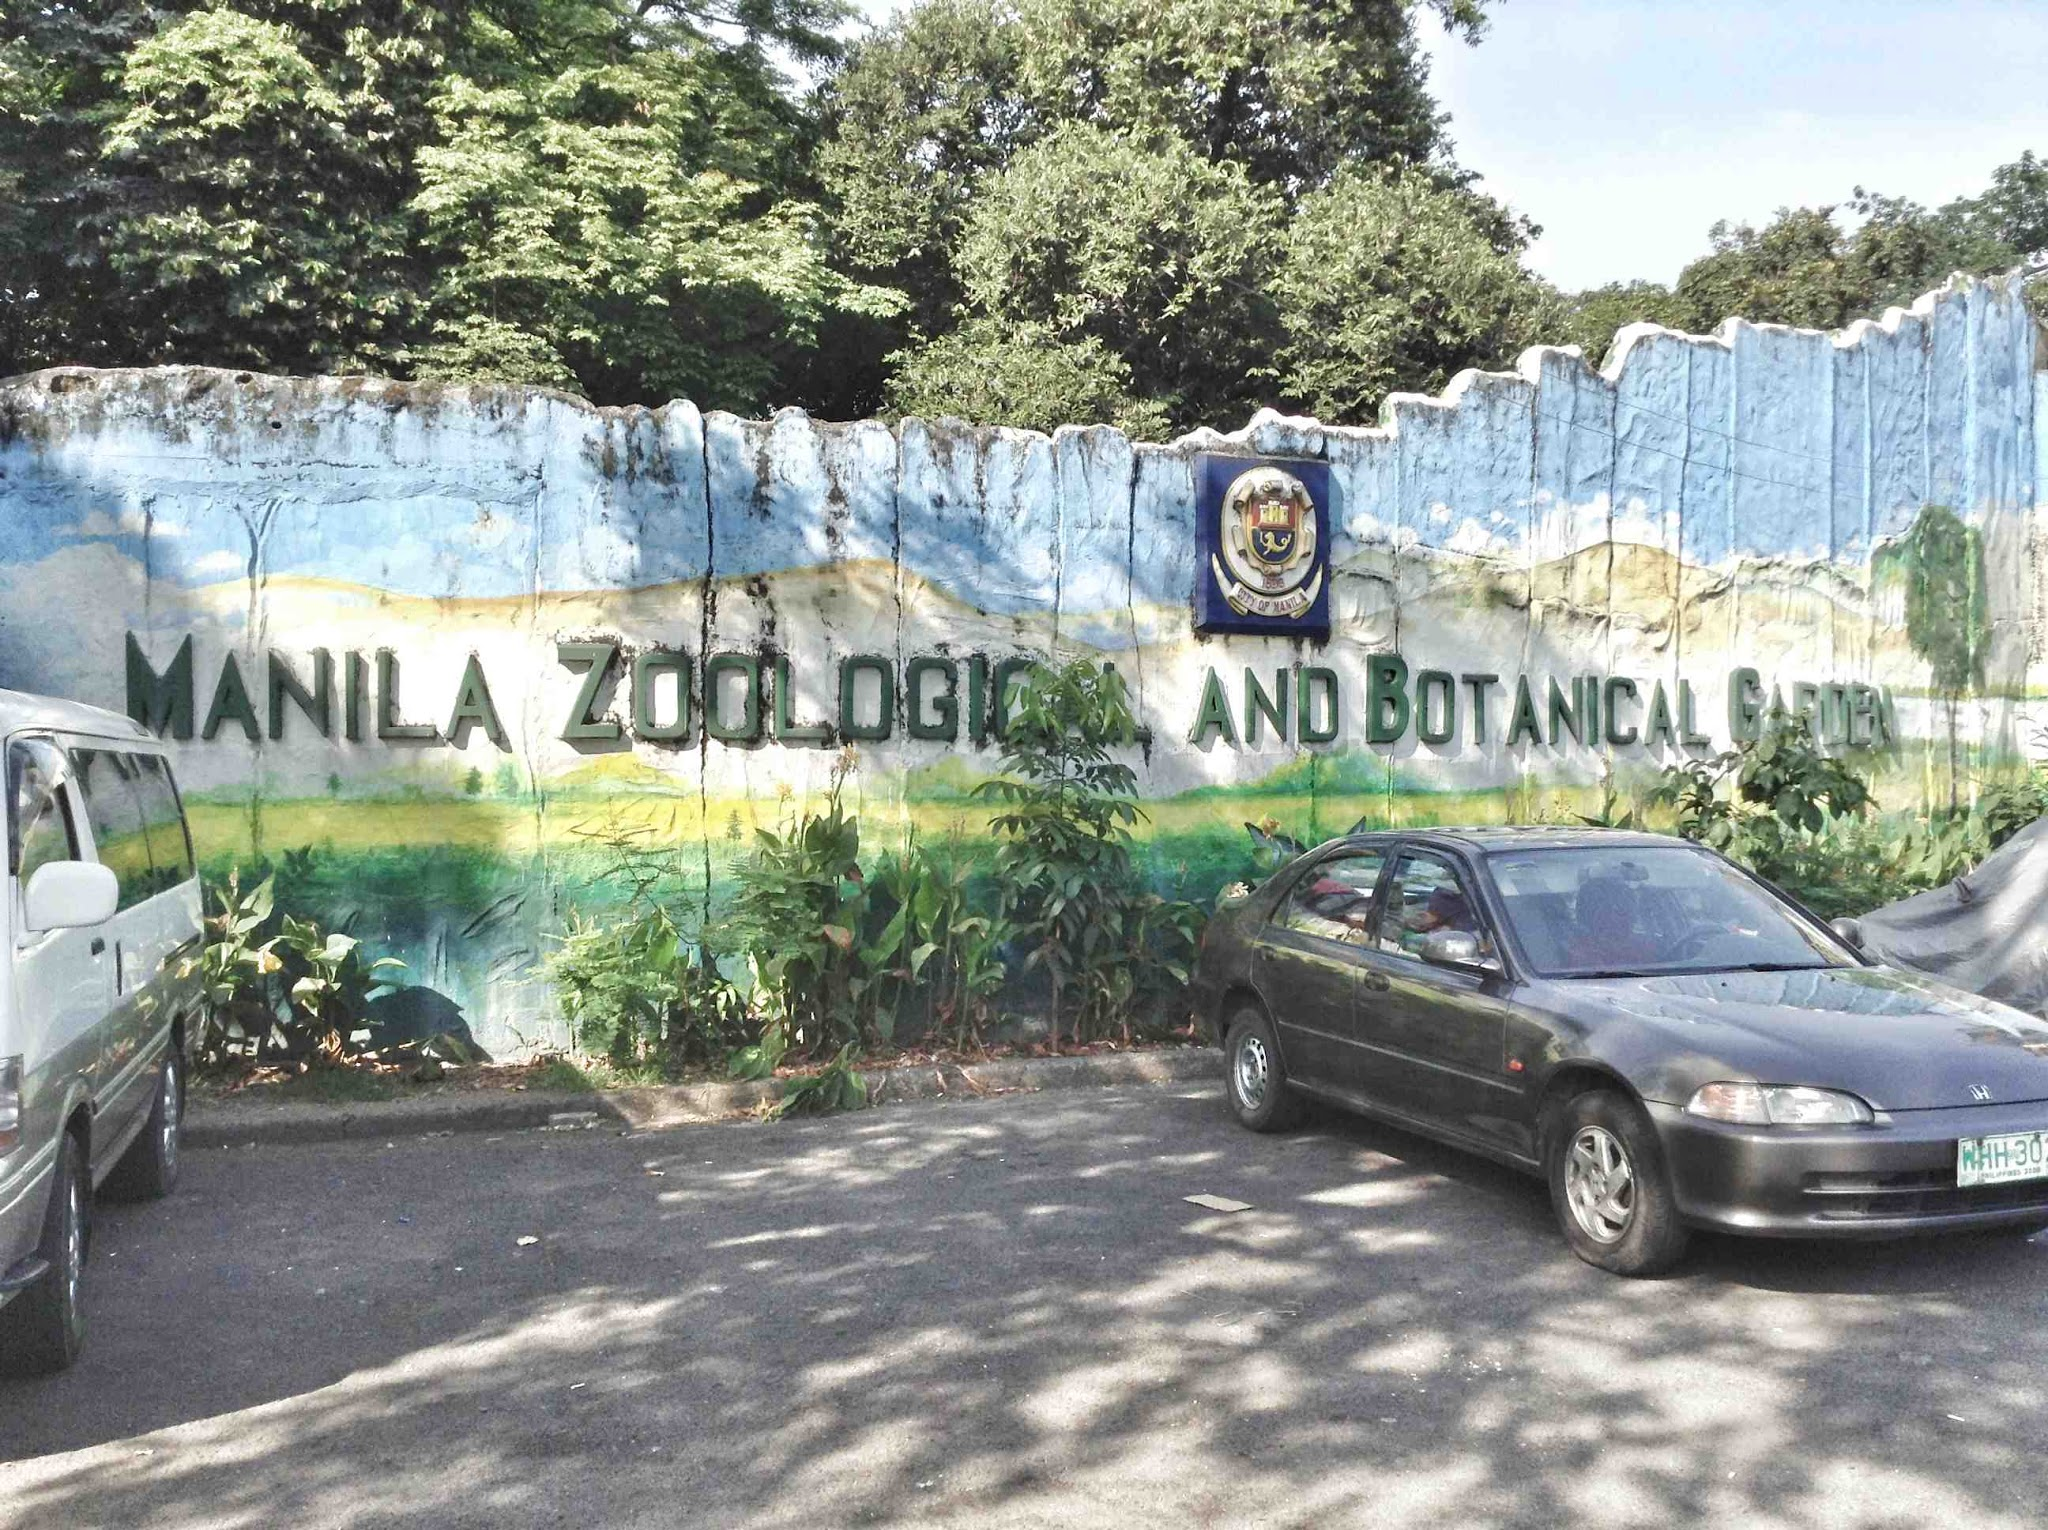 Image of Centralized Complex Store, The City Project to Rehabilitate Manila Zoo